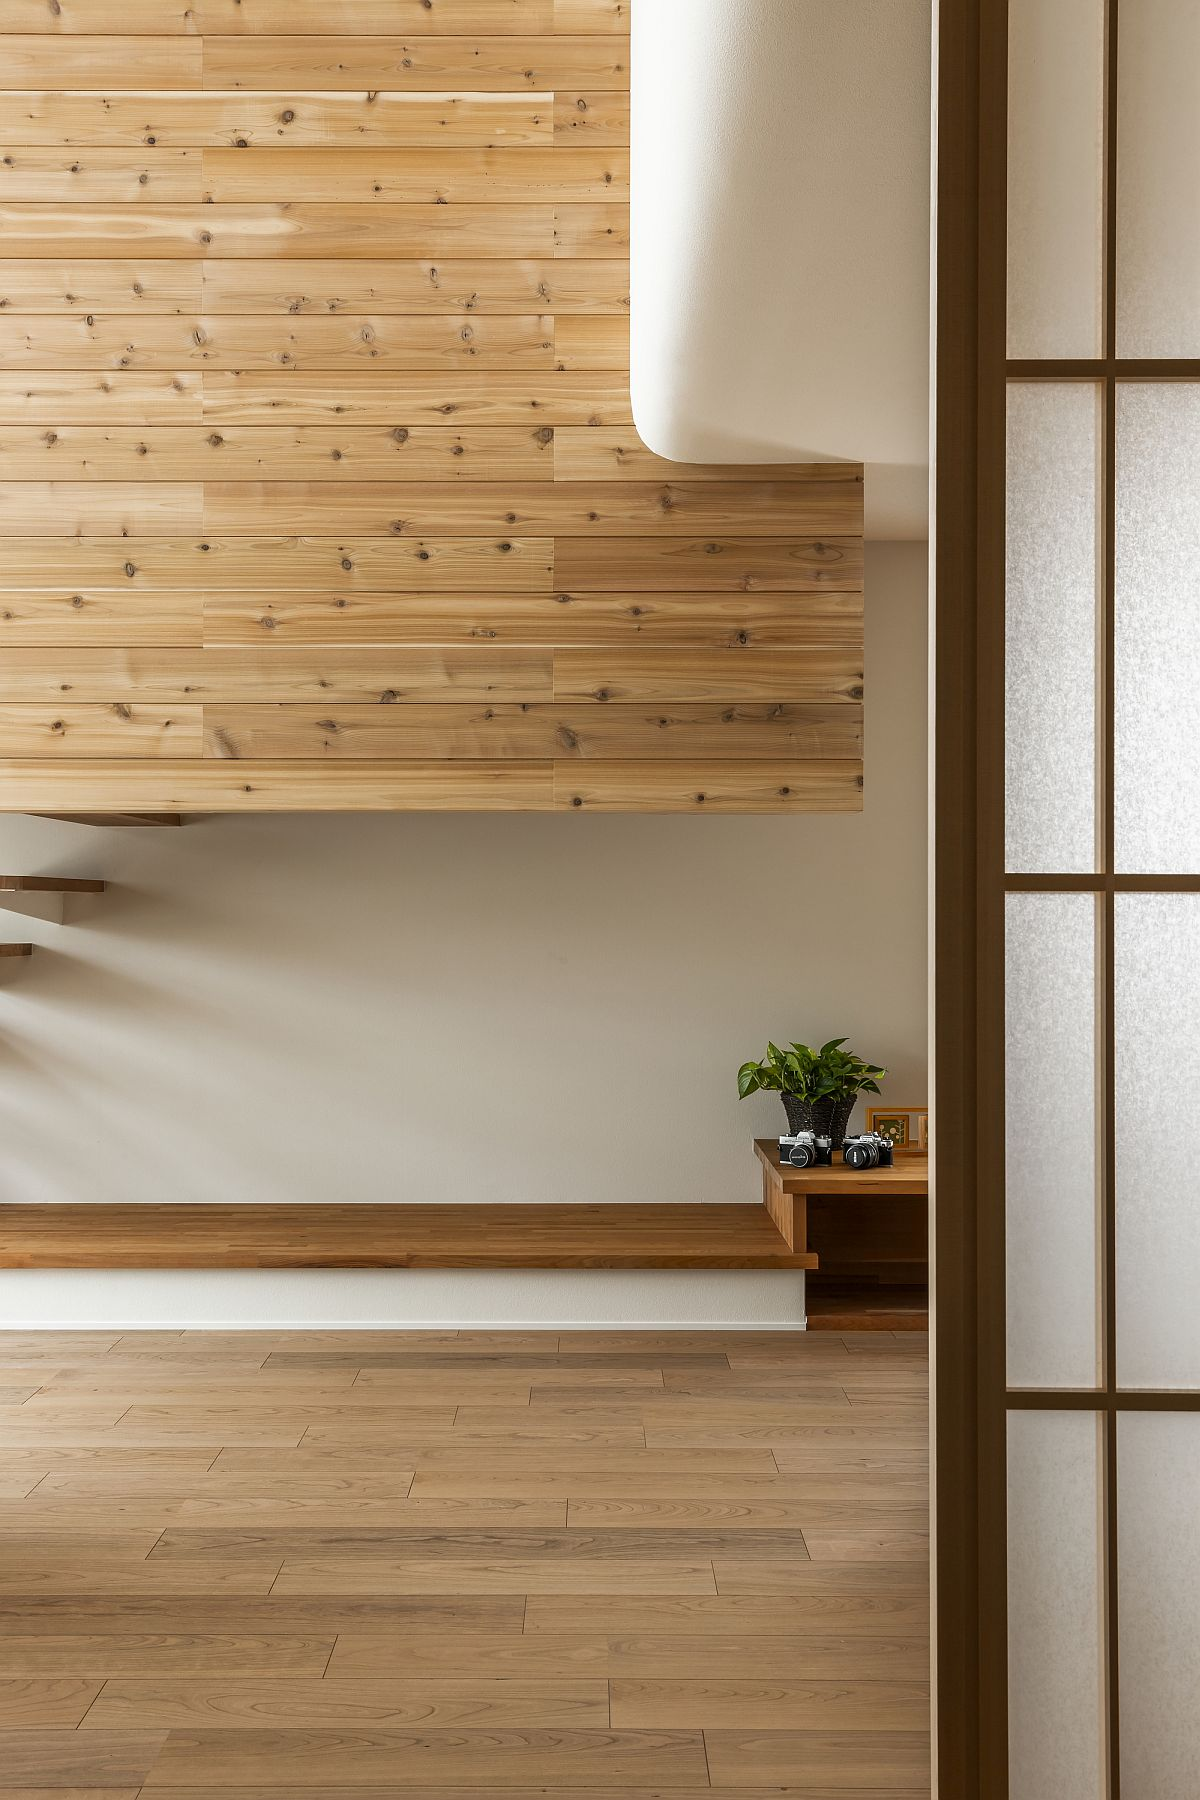 Traditional screens and elements of Japanese design are intertwined with modernity inside this home